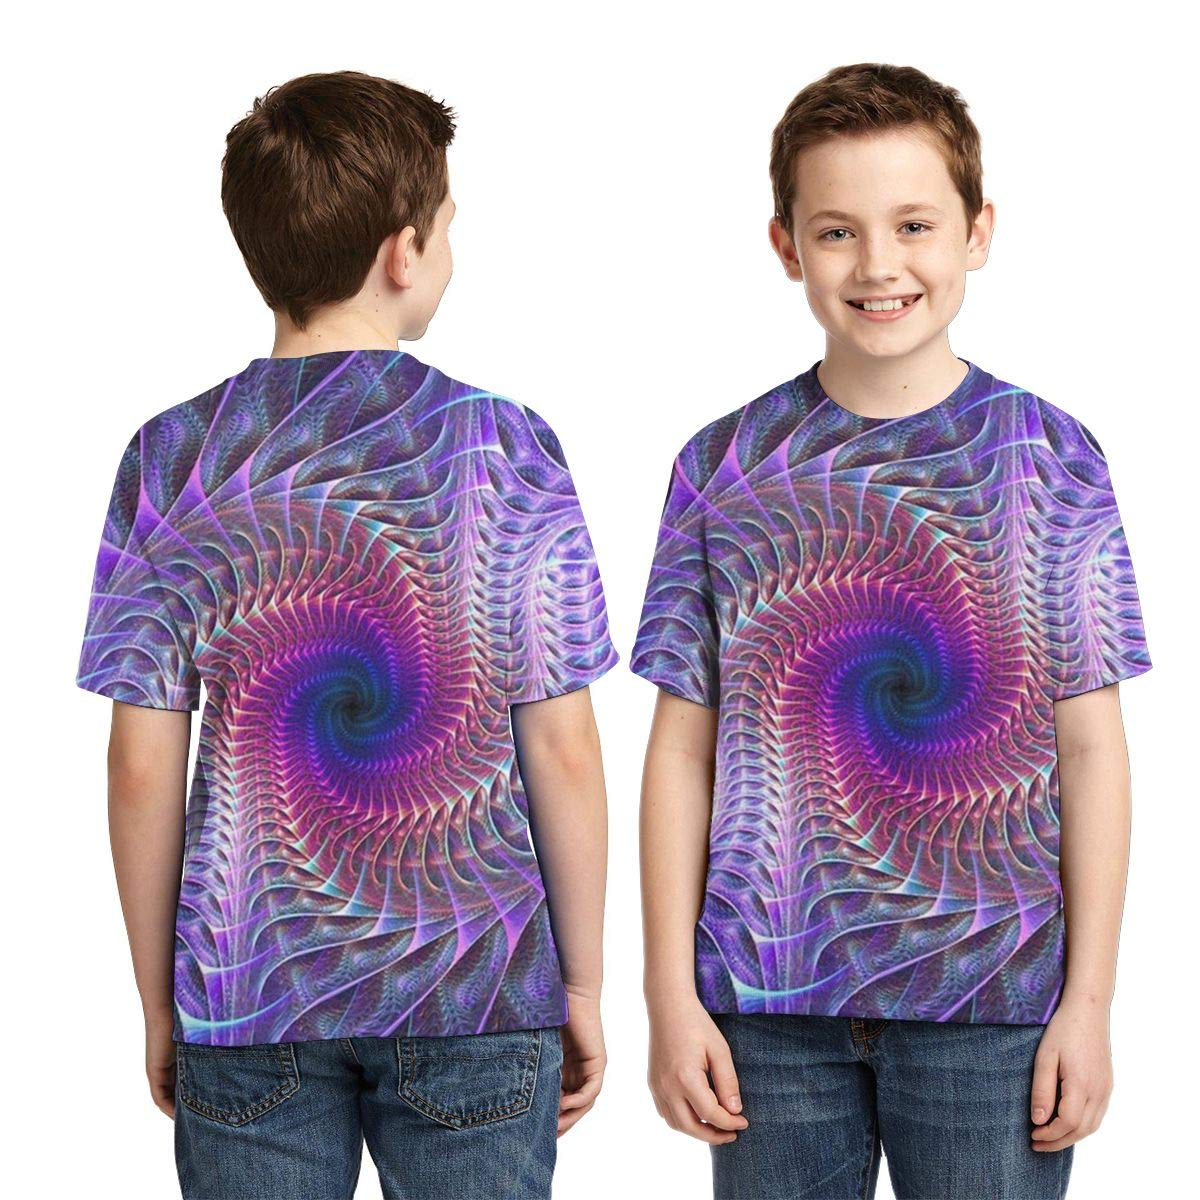 Boys Short Sleeve Spiral Purple Tie Dye Psychedelic Trippy Art Kids 3D Graphic Printed T-Shirt Crewneck Shirt Tees